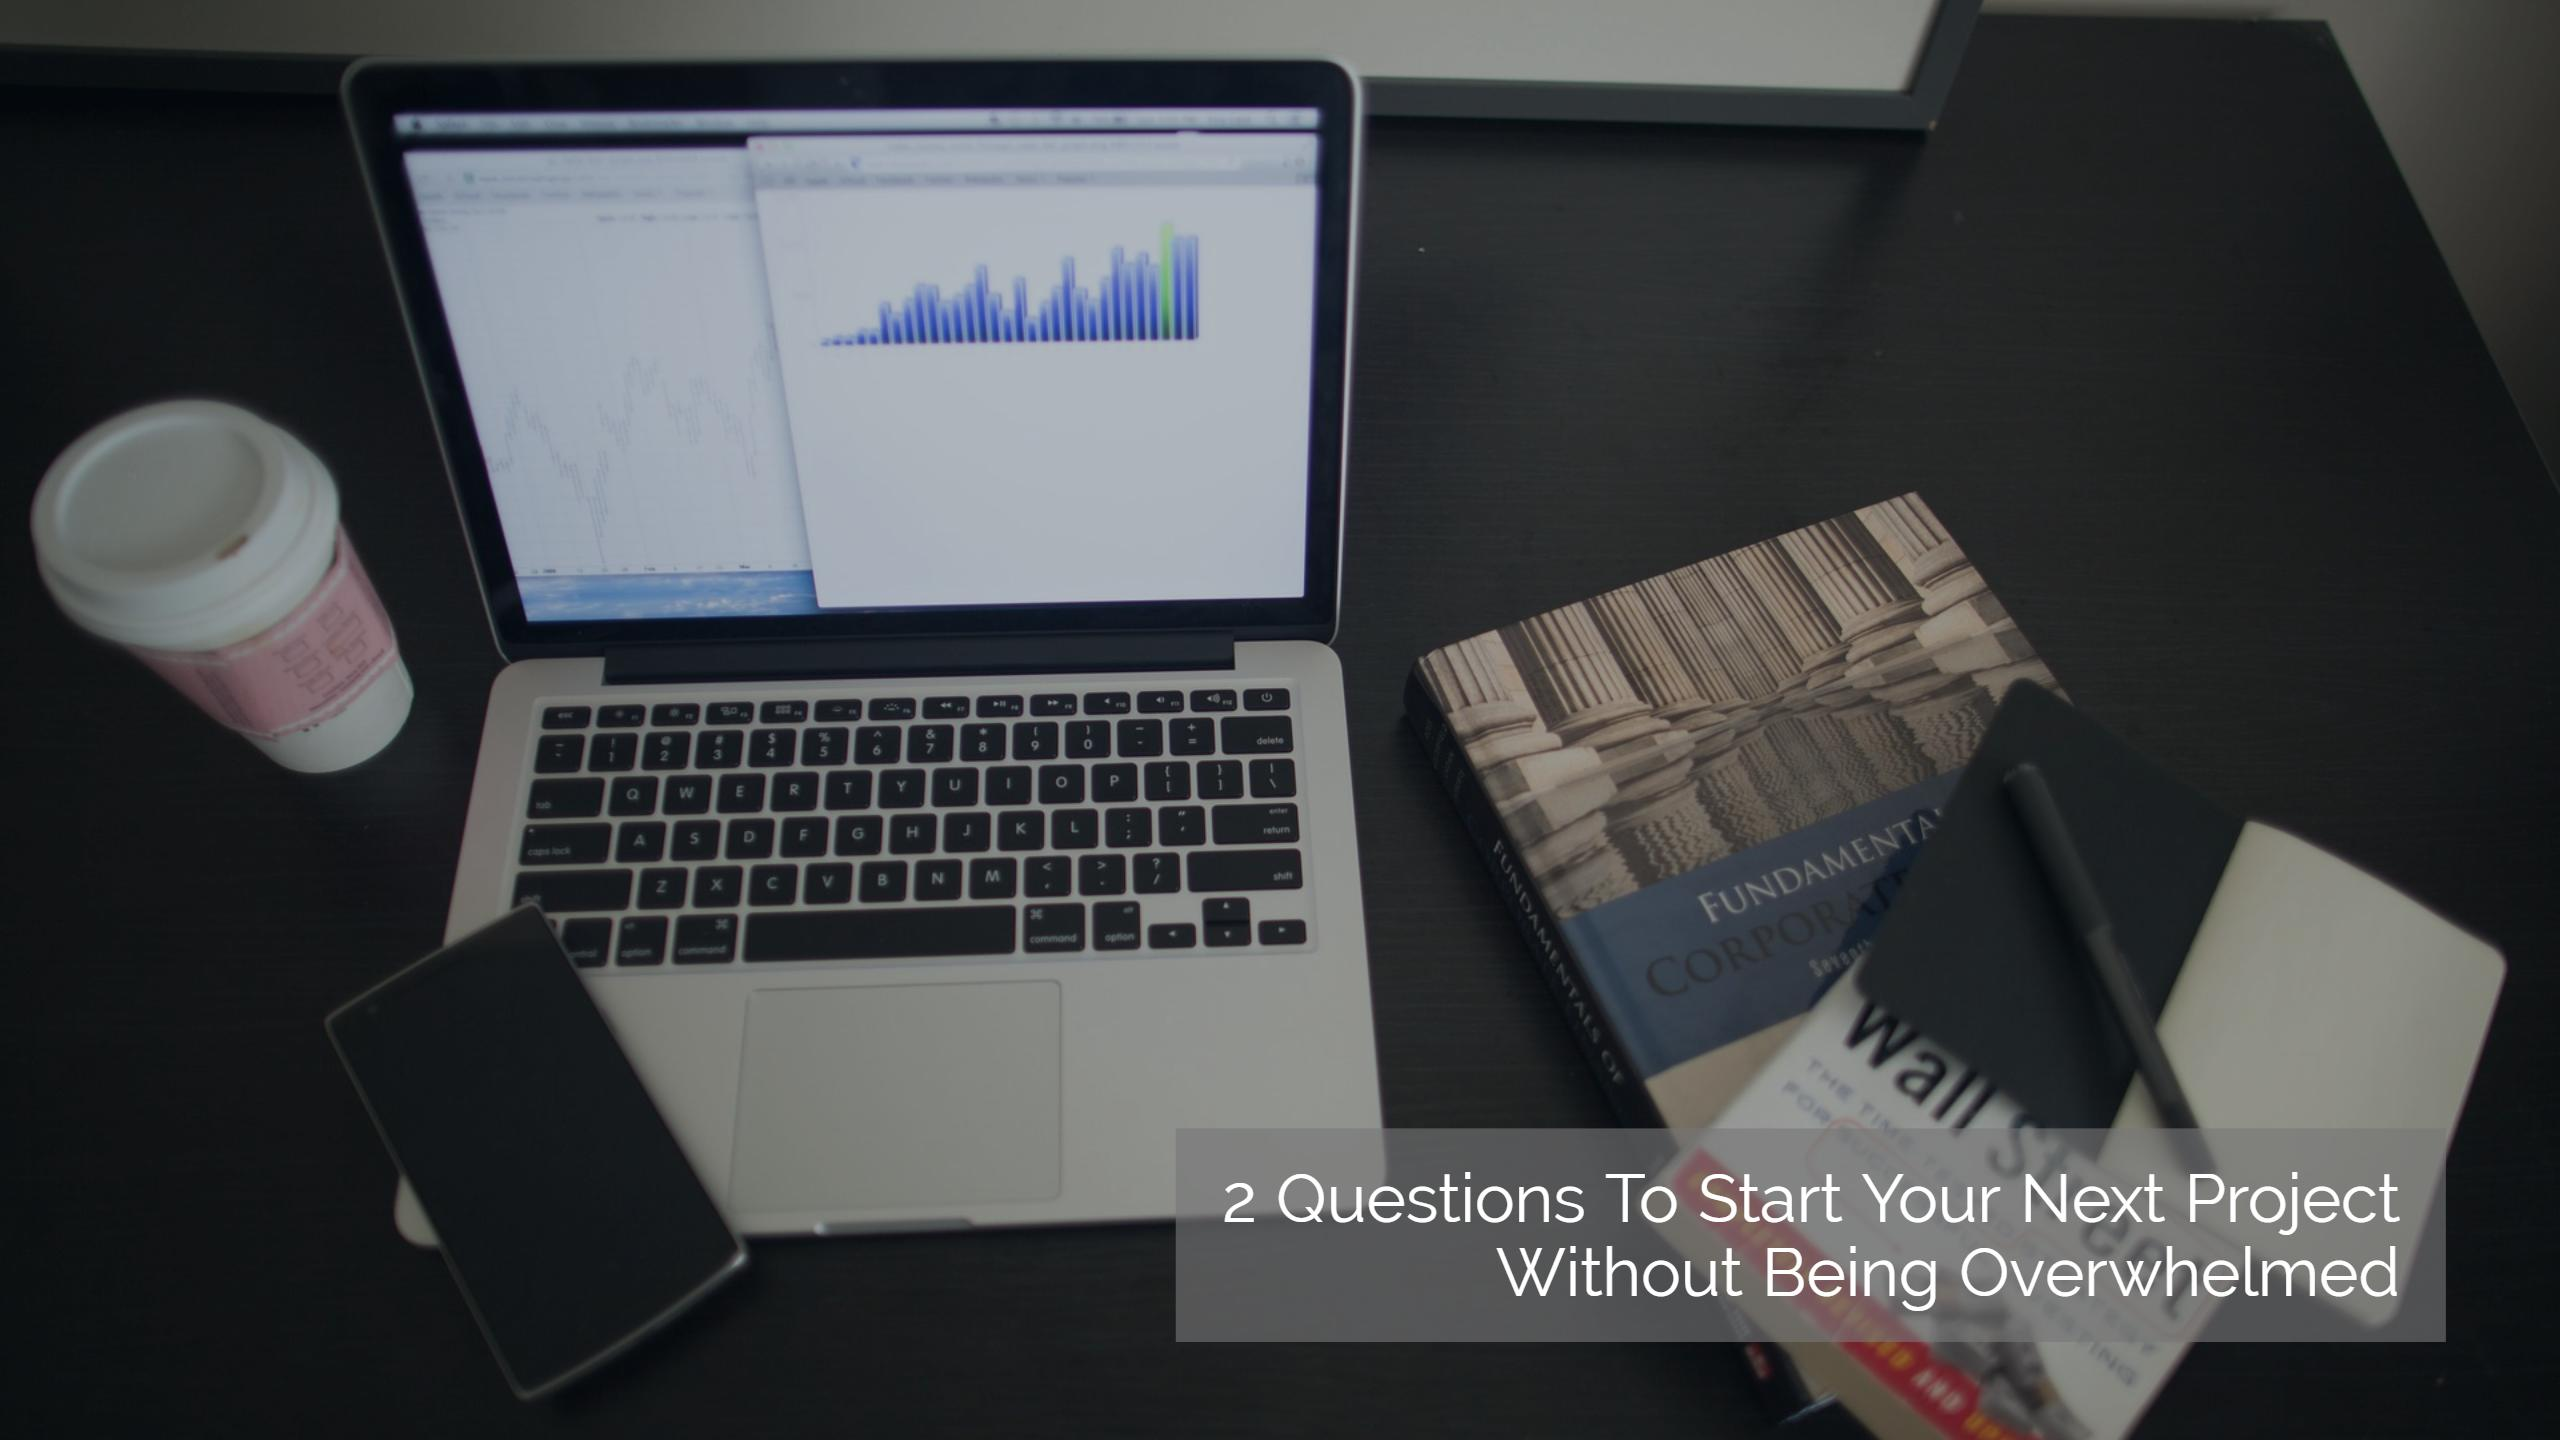 2 Questions To Start Your Next Project Without Being Overwhelmed